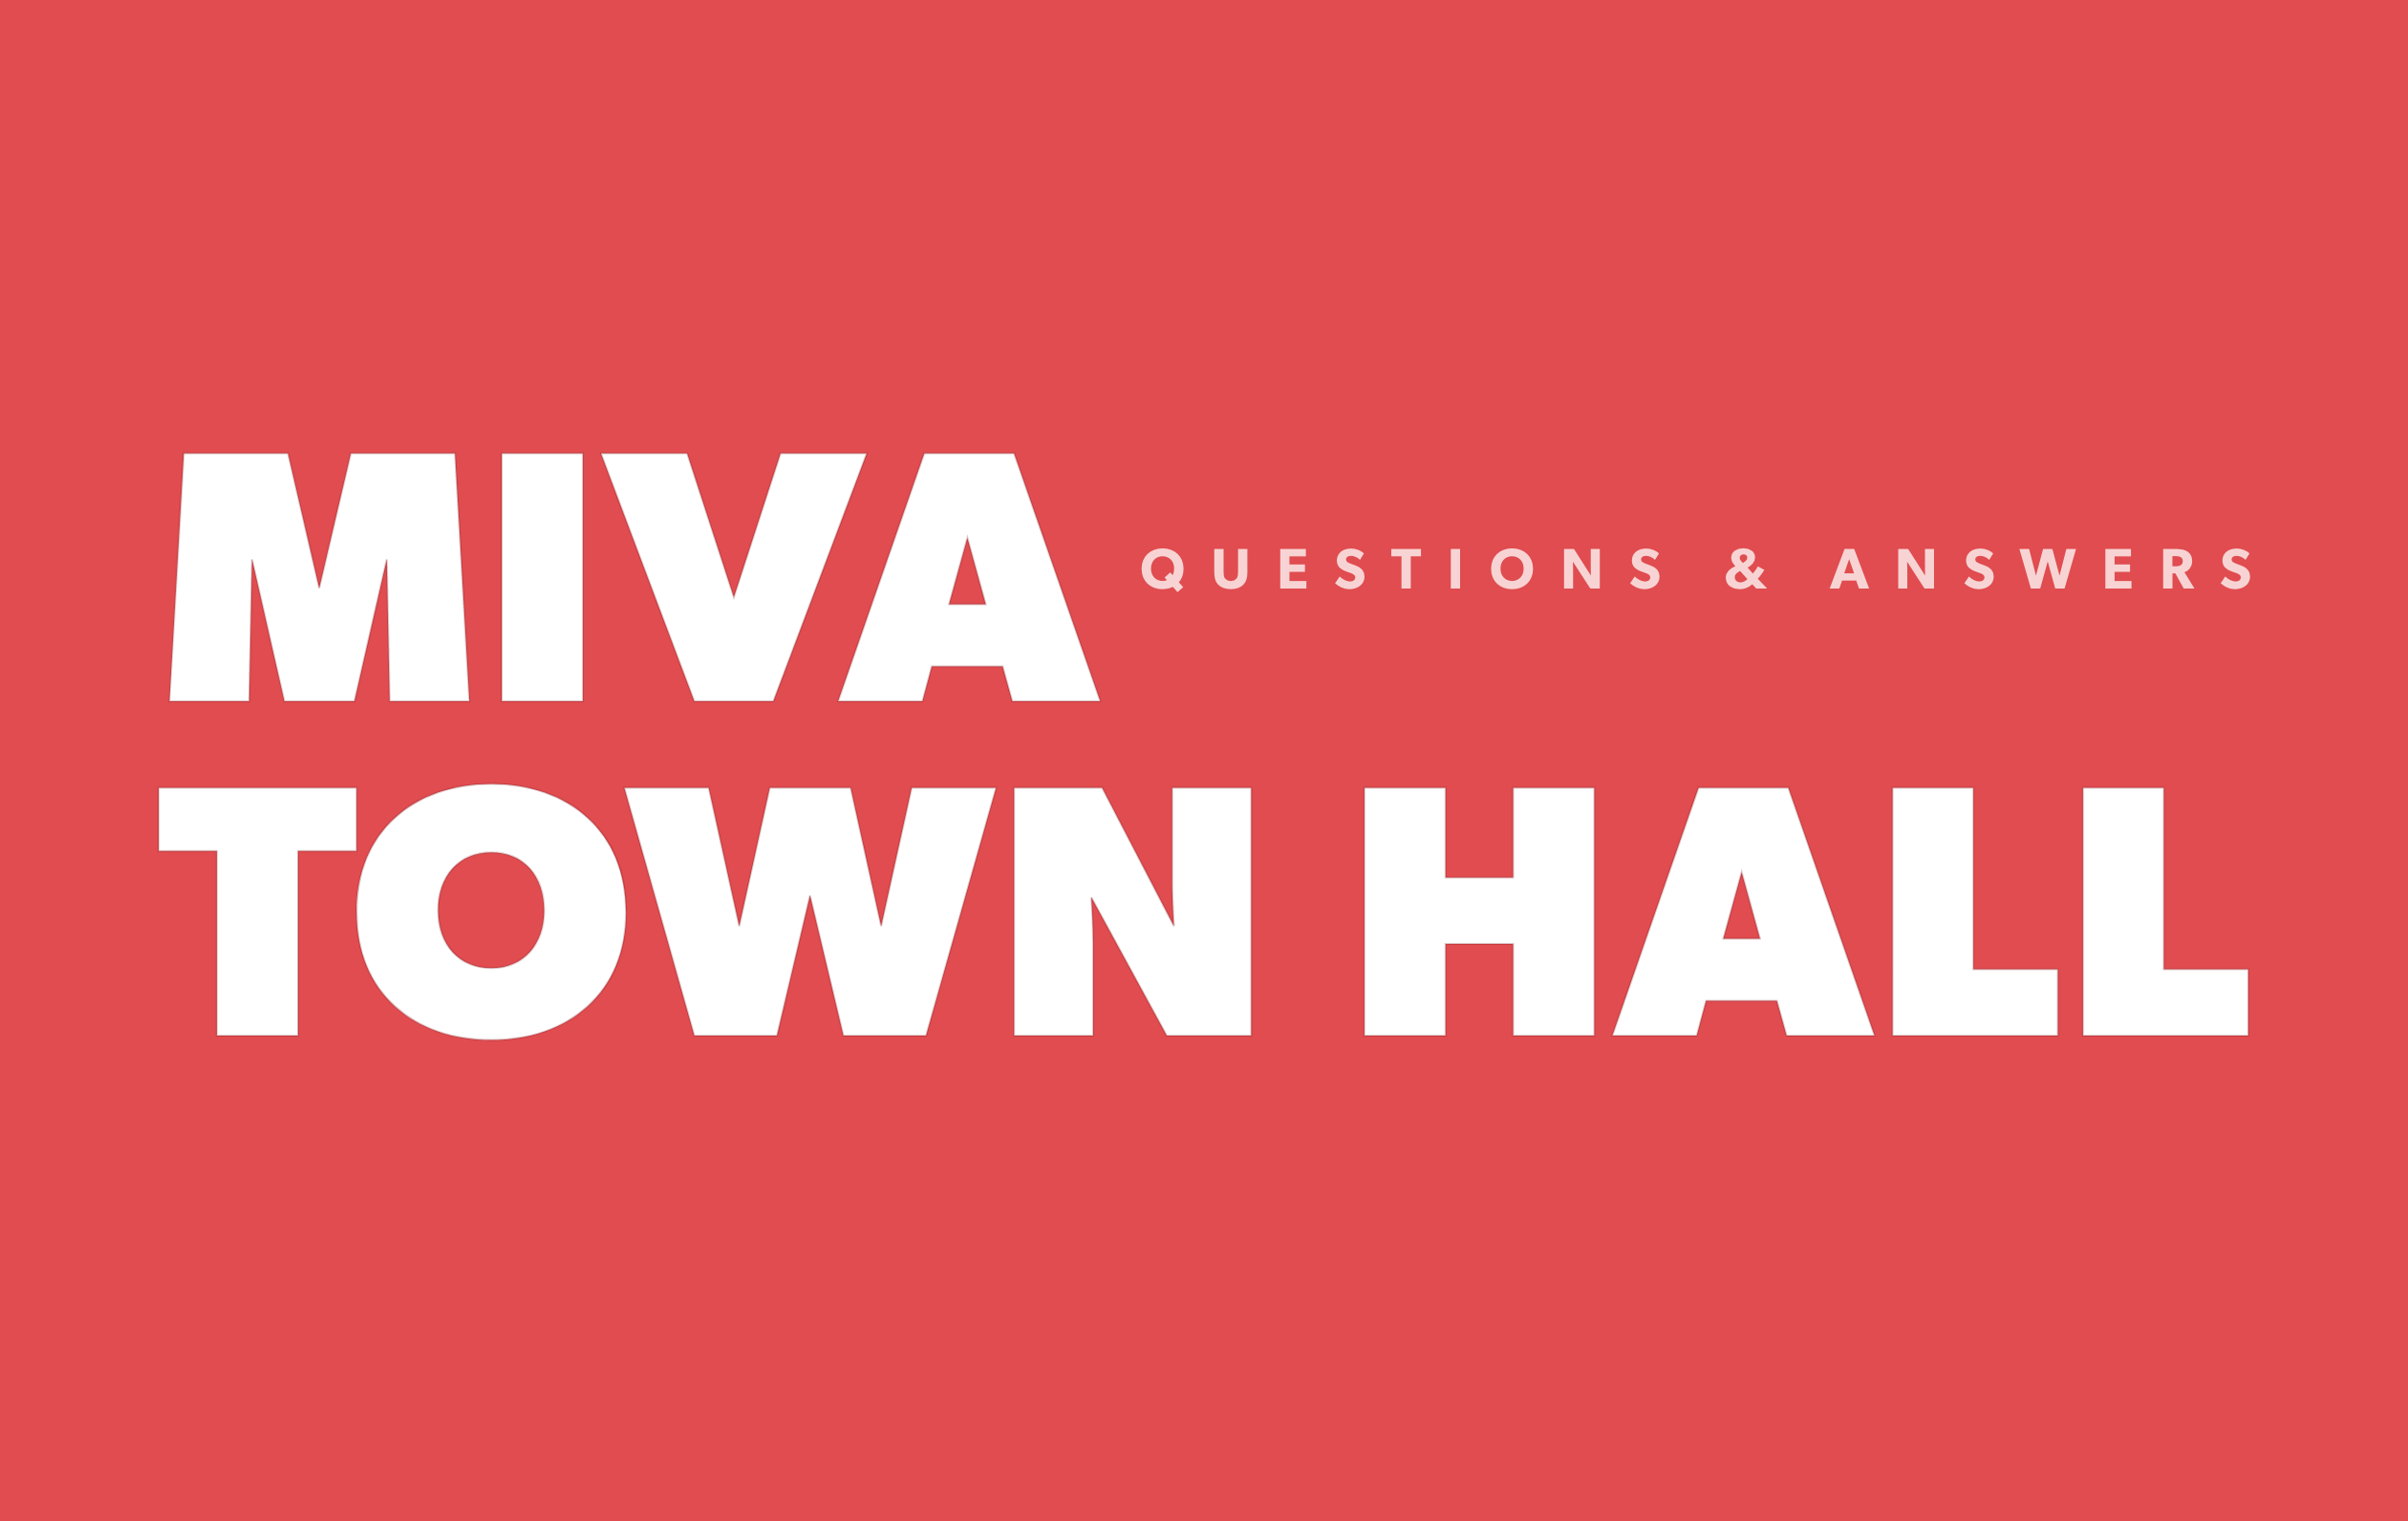 Miva Town Hall Questions + Answers